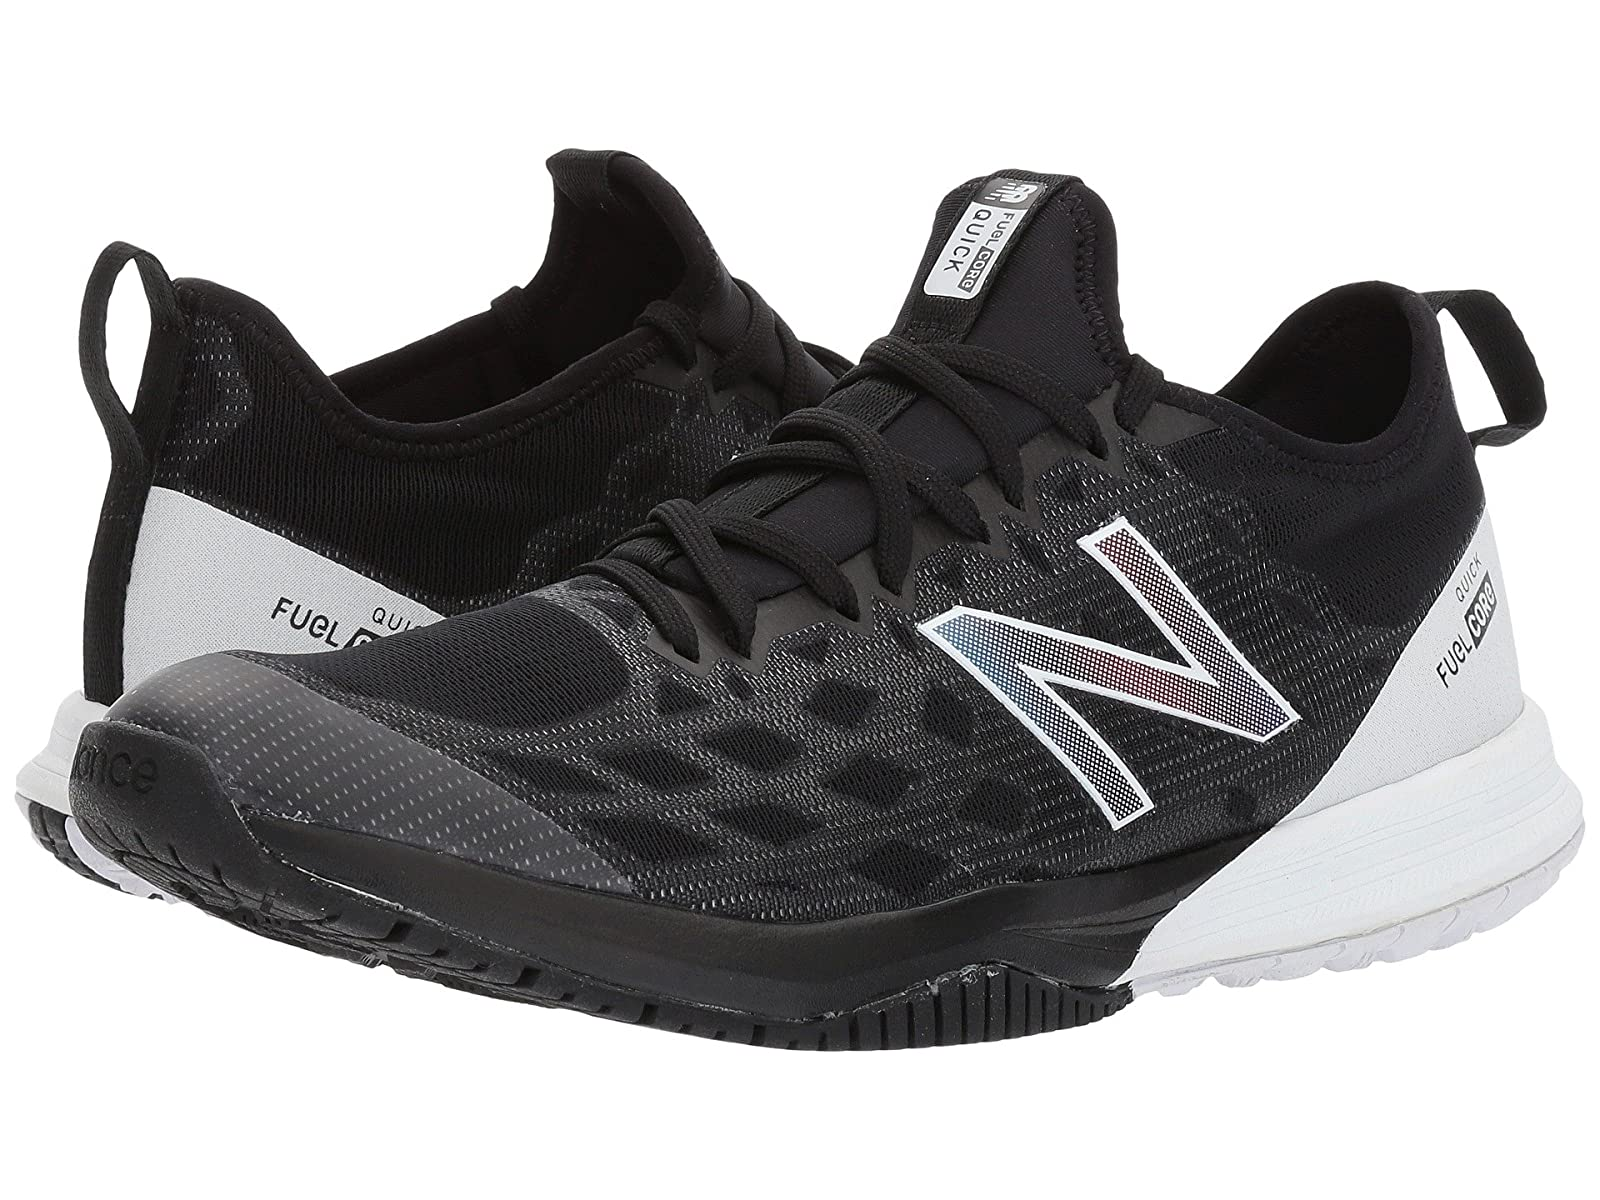 New Balance MXQIKv3Cheap and distinctive eye-catching shoes